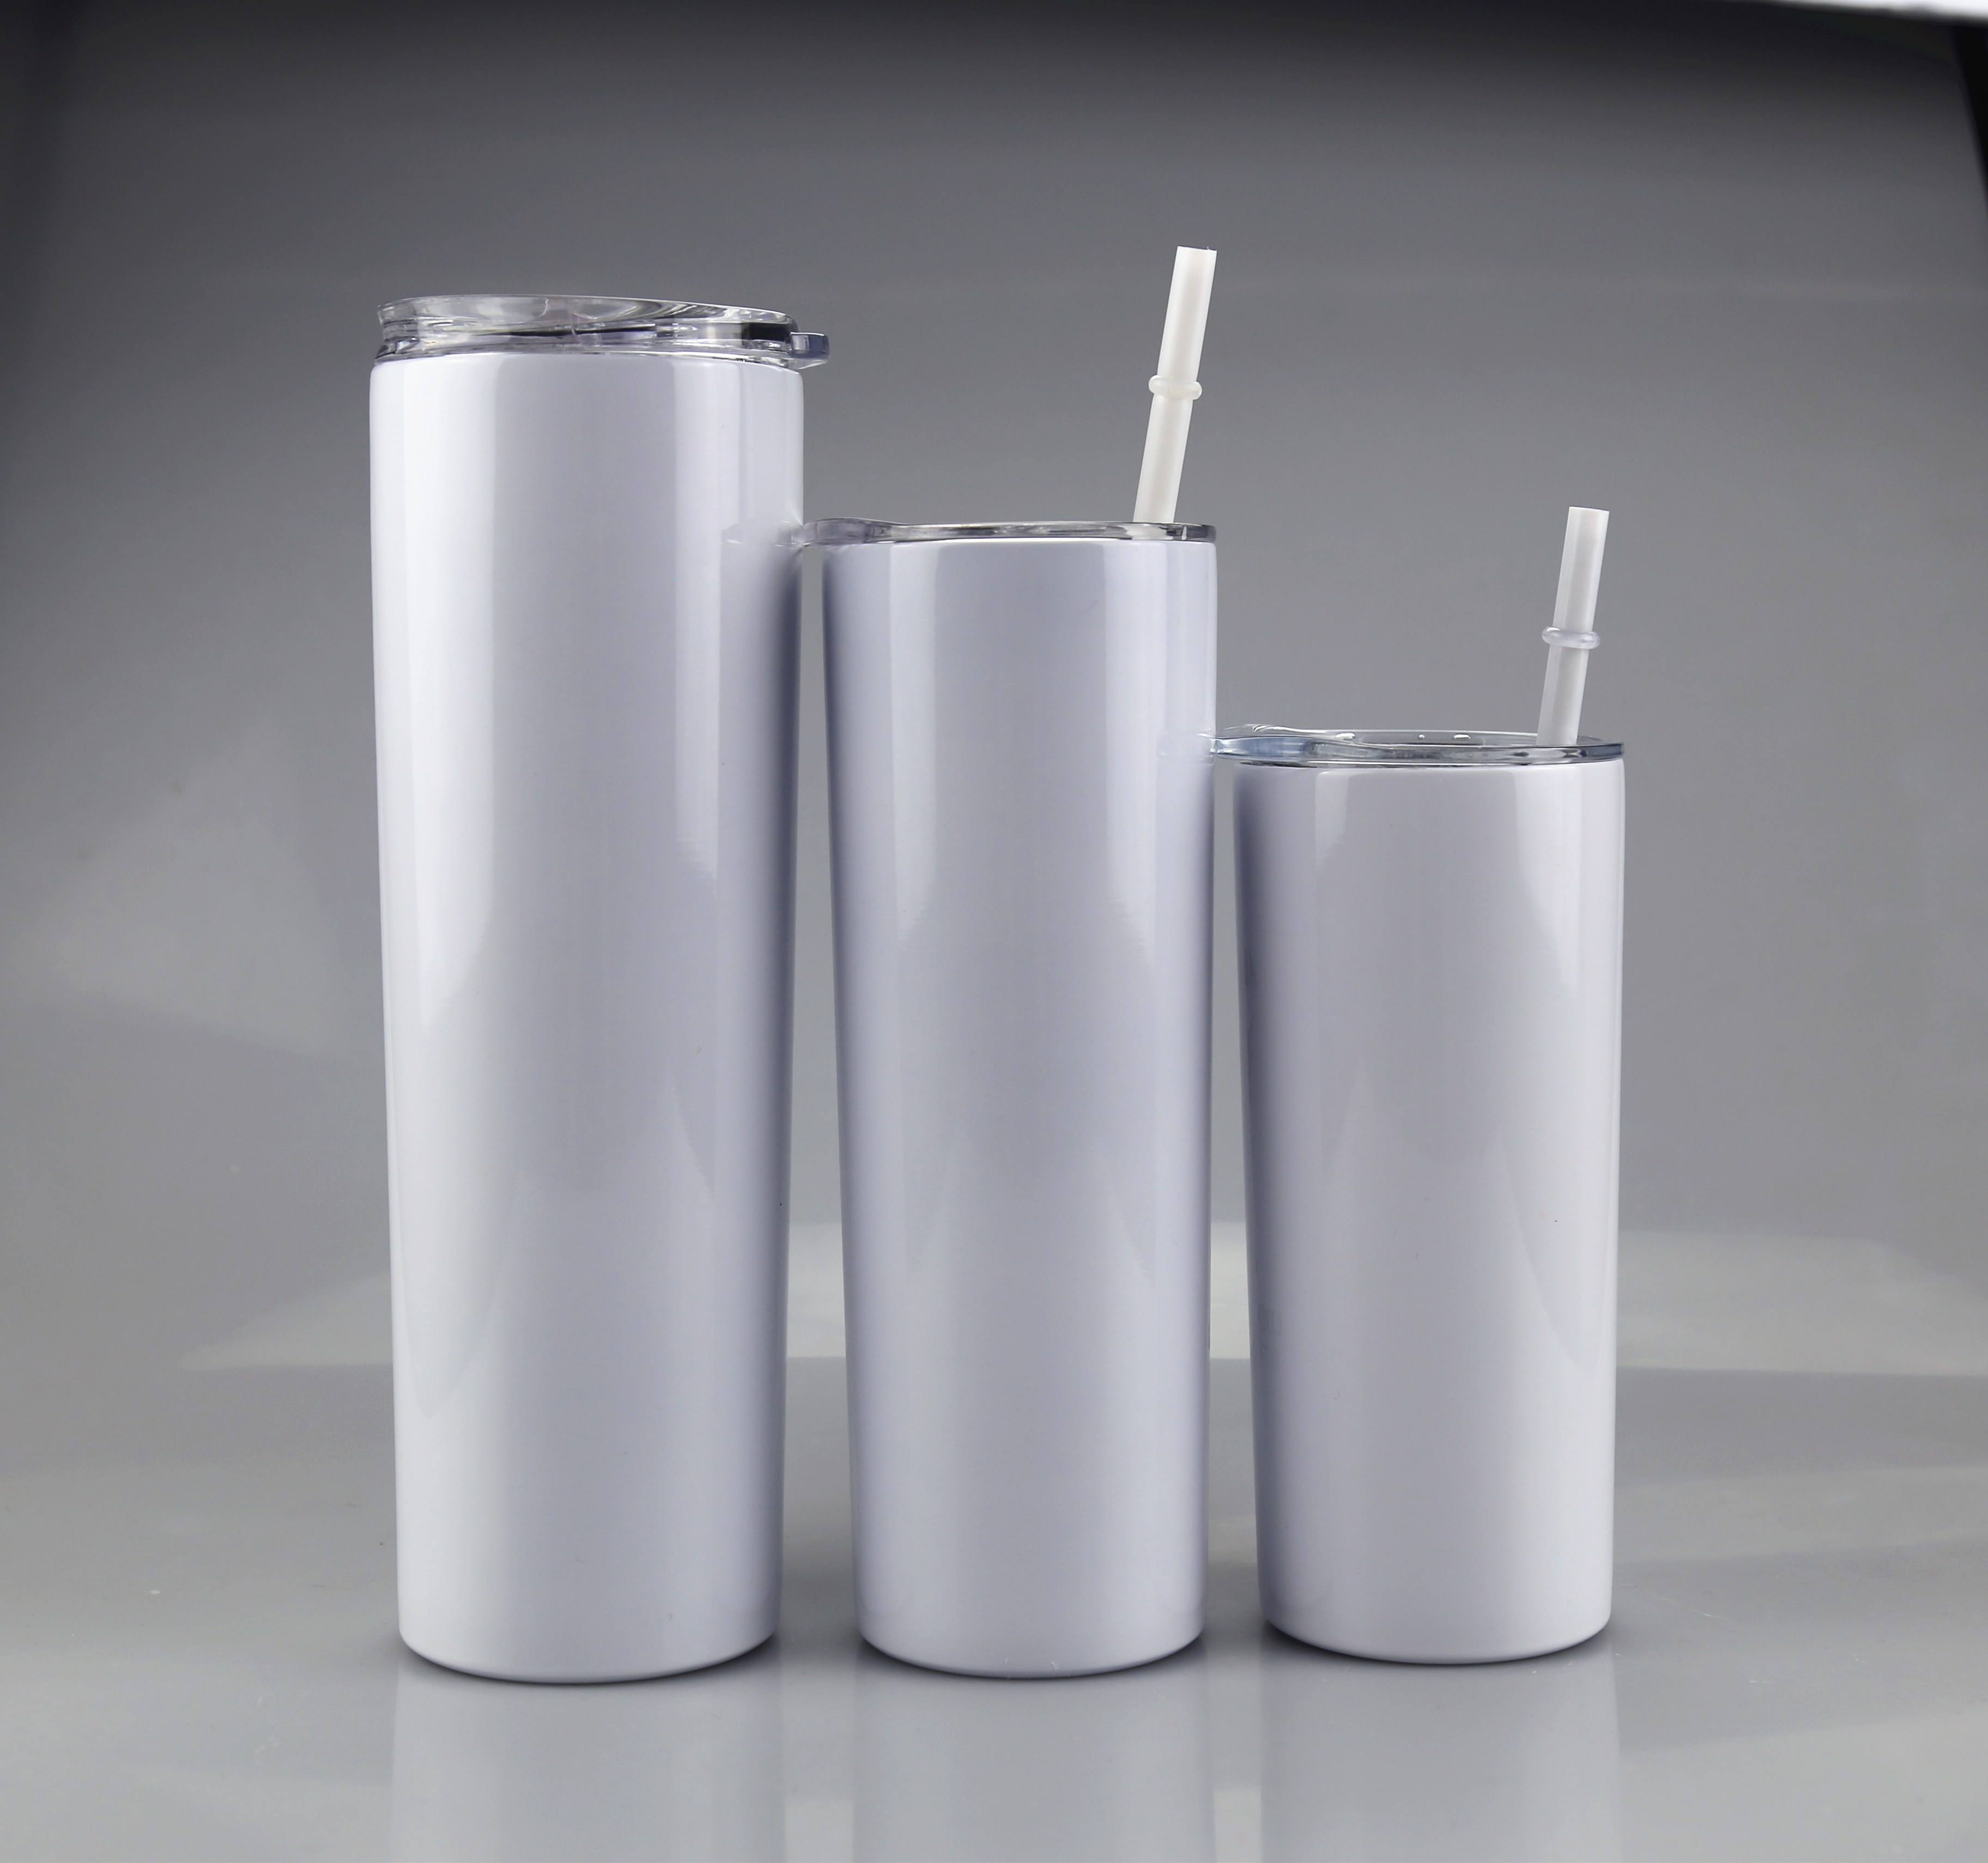 Wholesale double wall tumbler 20oz skinny sublimation bank tumbler cups in bulk with lid and straw